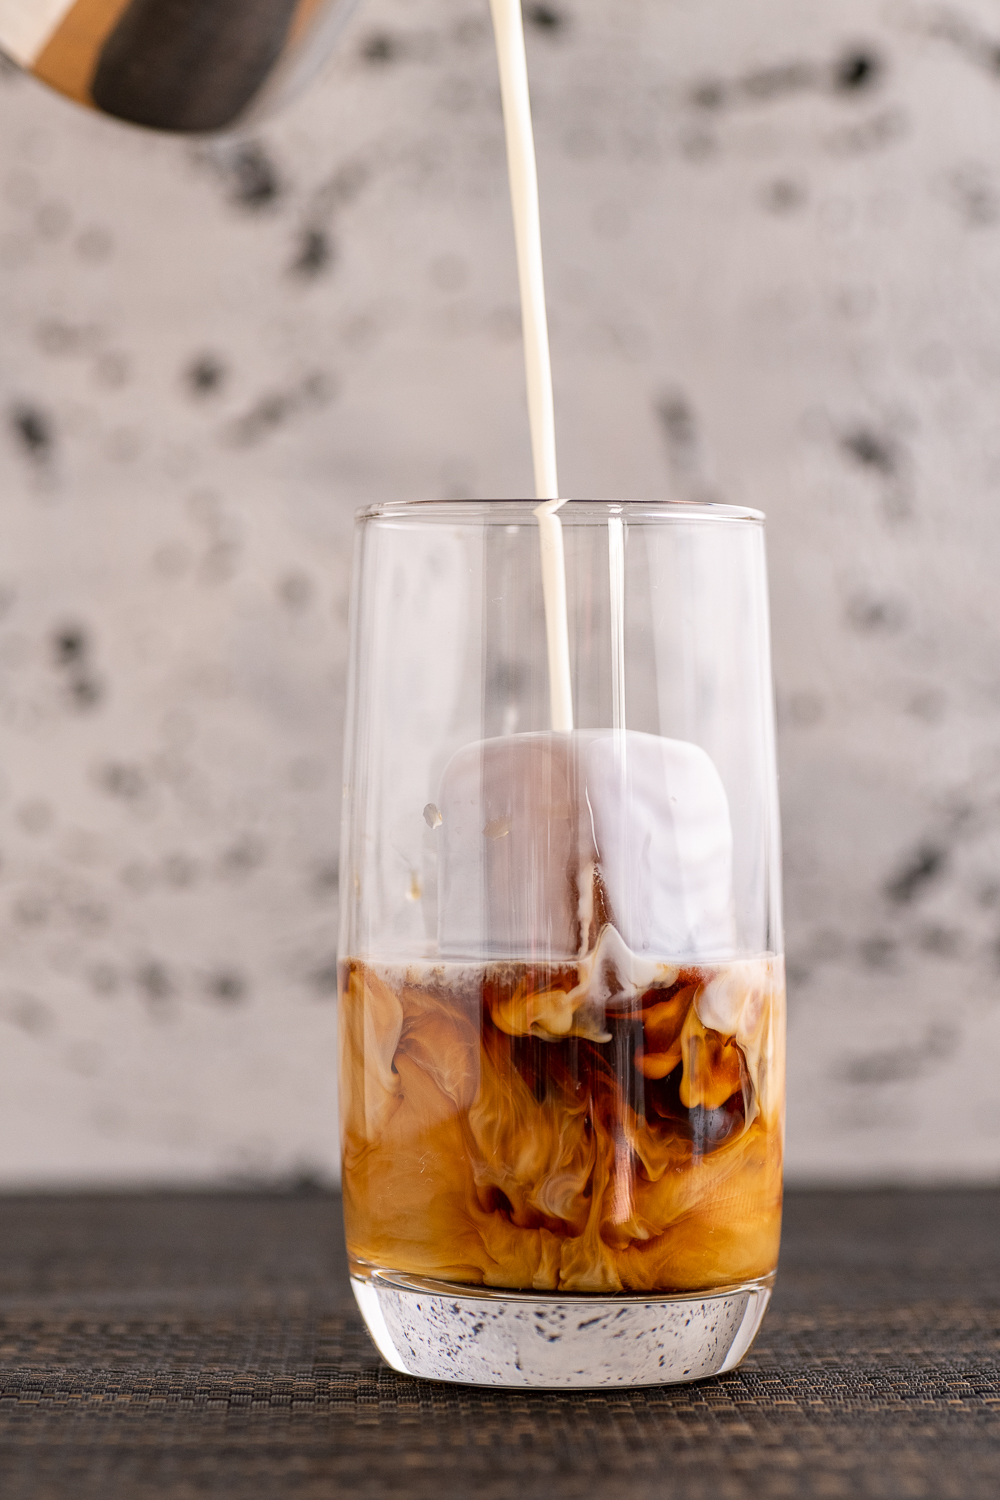 Beverage Photography of Iced Coffee (First Press coffee)